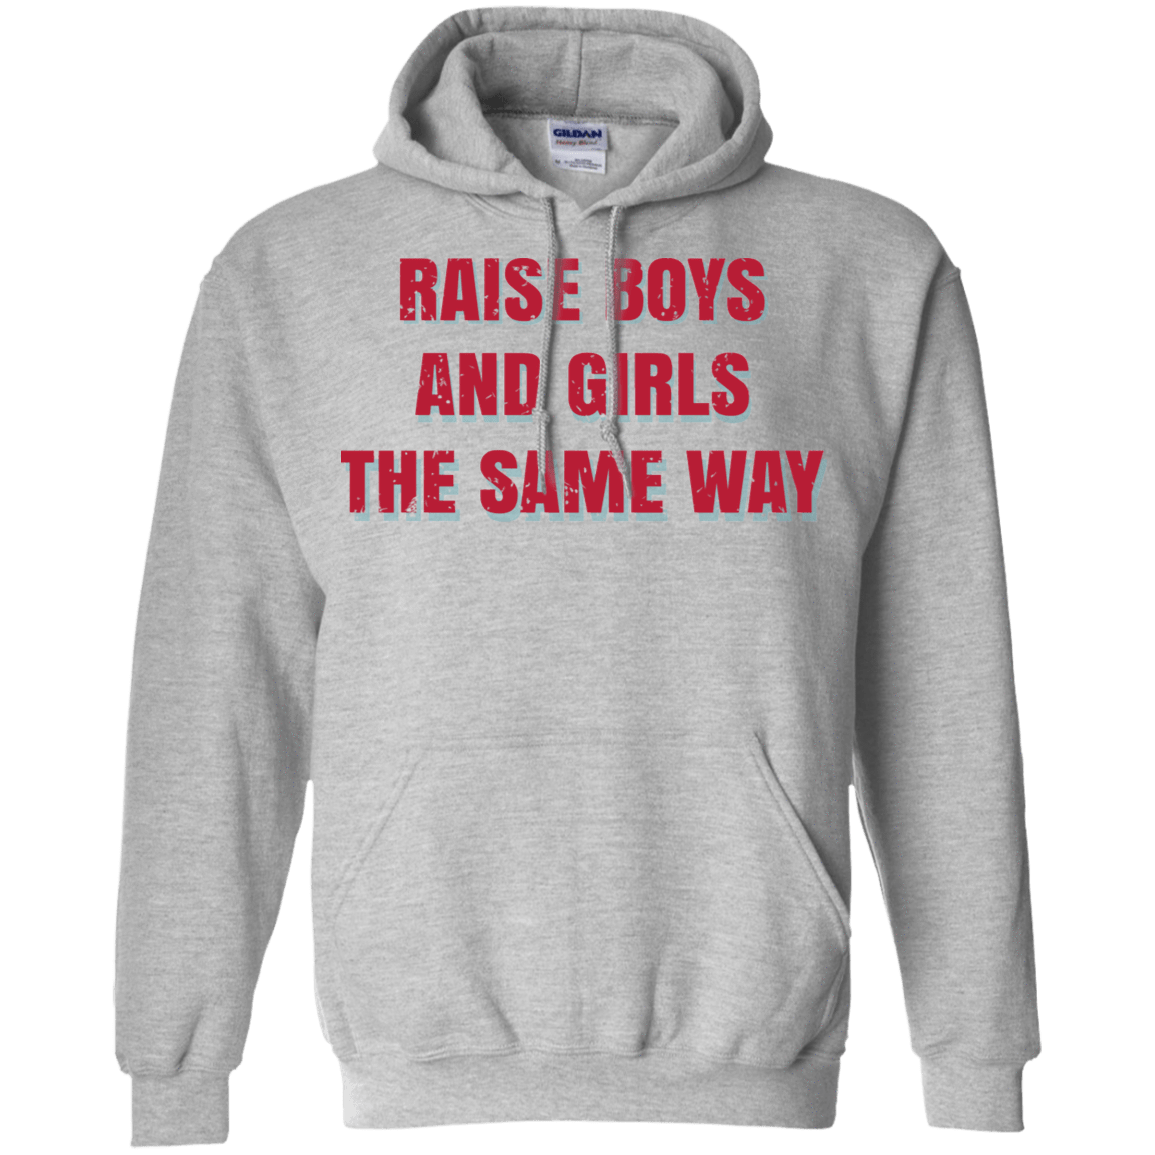 Raise Boys And Girls The Same Way 541-4741-72088652-23111 - Tee Ript